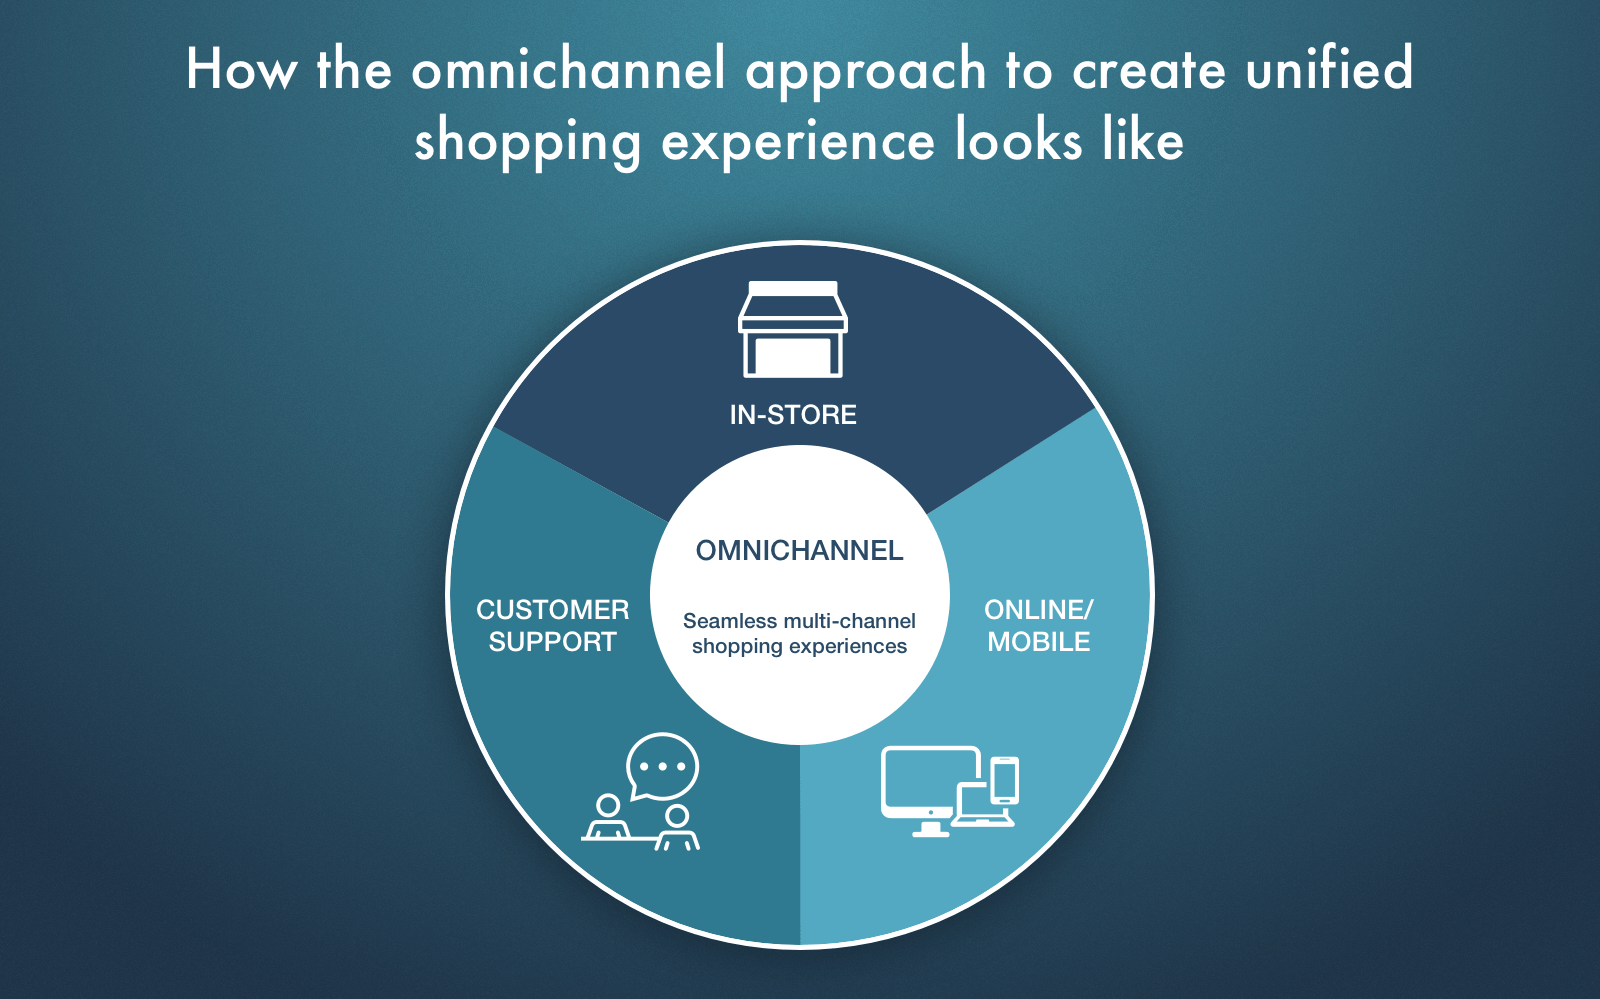 Mobile commerce trends 2018: omnichannel shopping experience